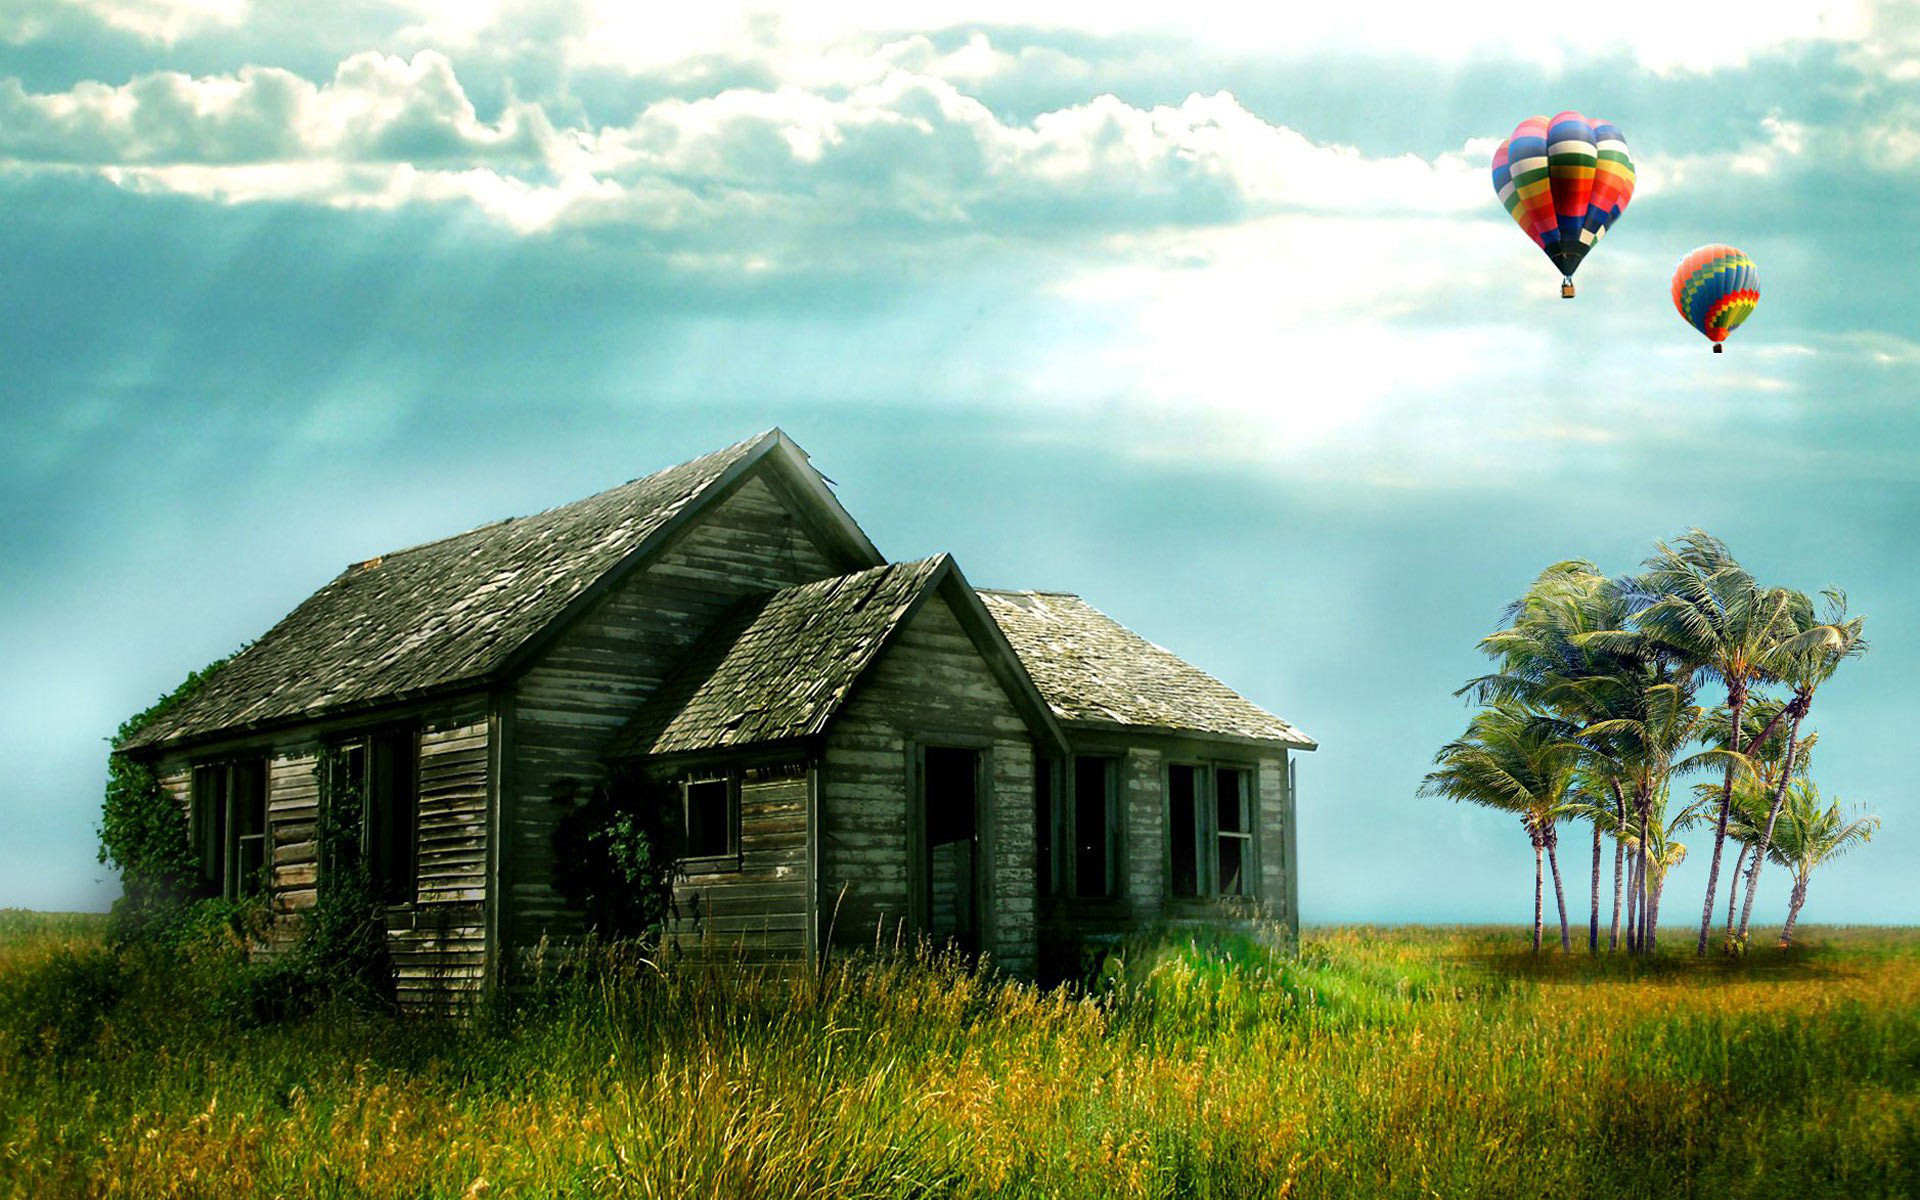 1920x1200 Hot Air Balloon Windows Desktop Backgrounds